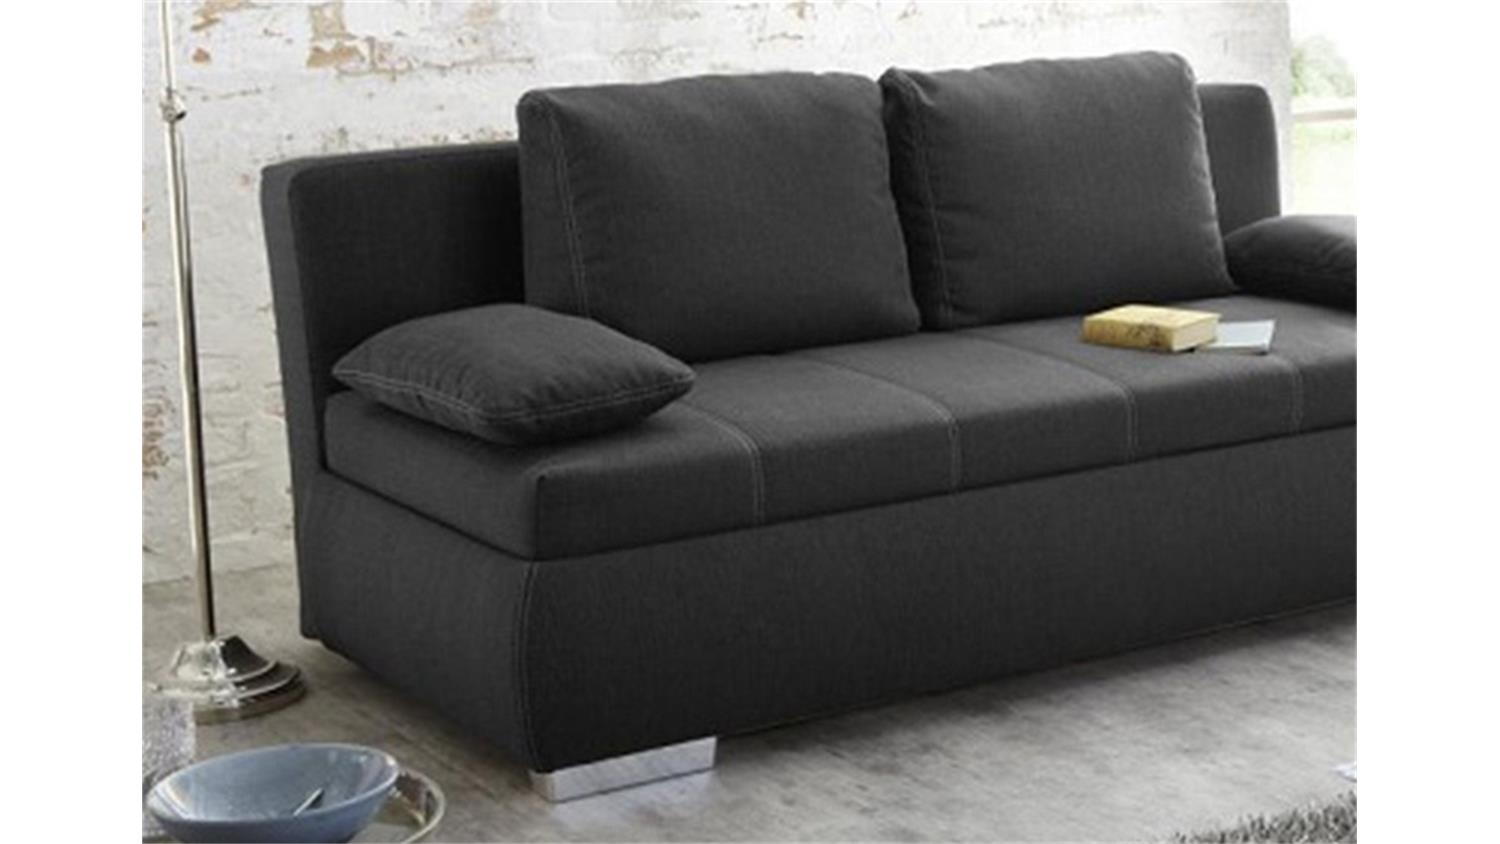 boxspring schlafsofa memphis sofa dauerschl fer in grau. Black Bedroom Furniture Sets. Home Design Ideas